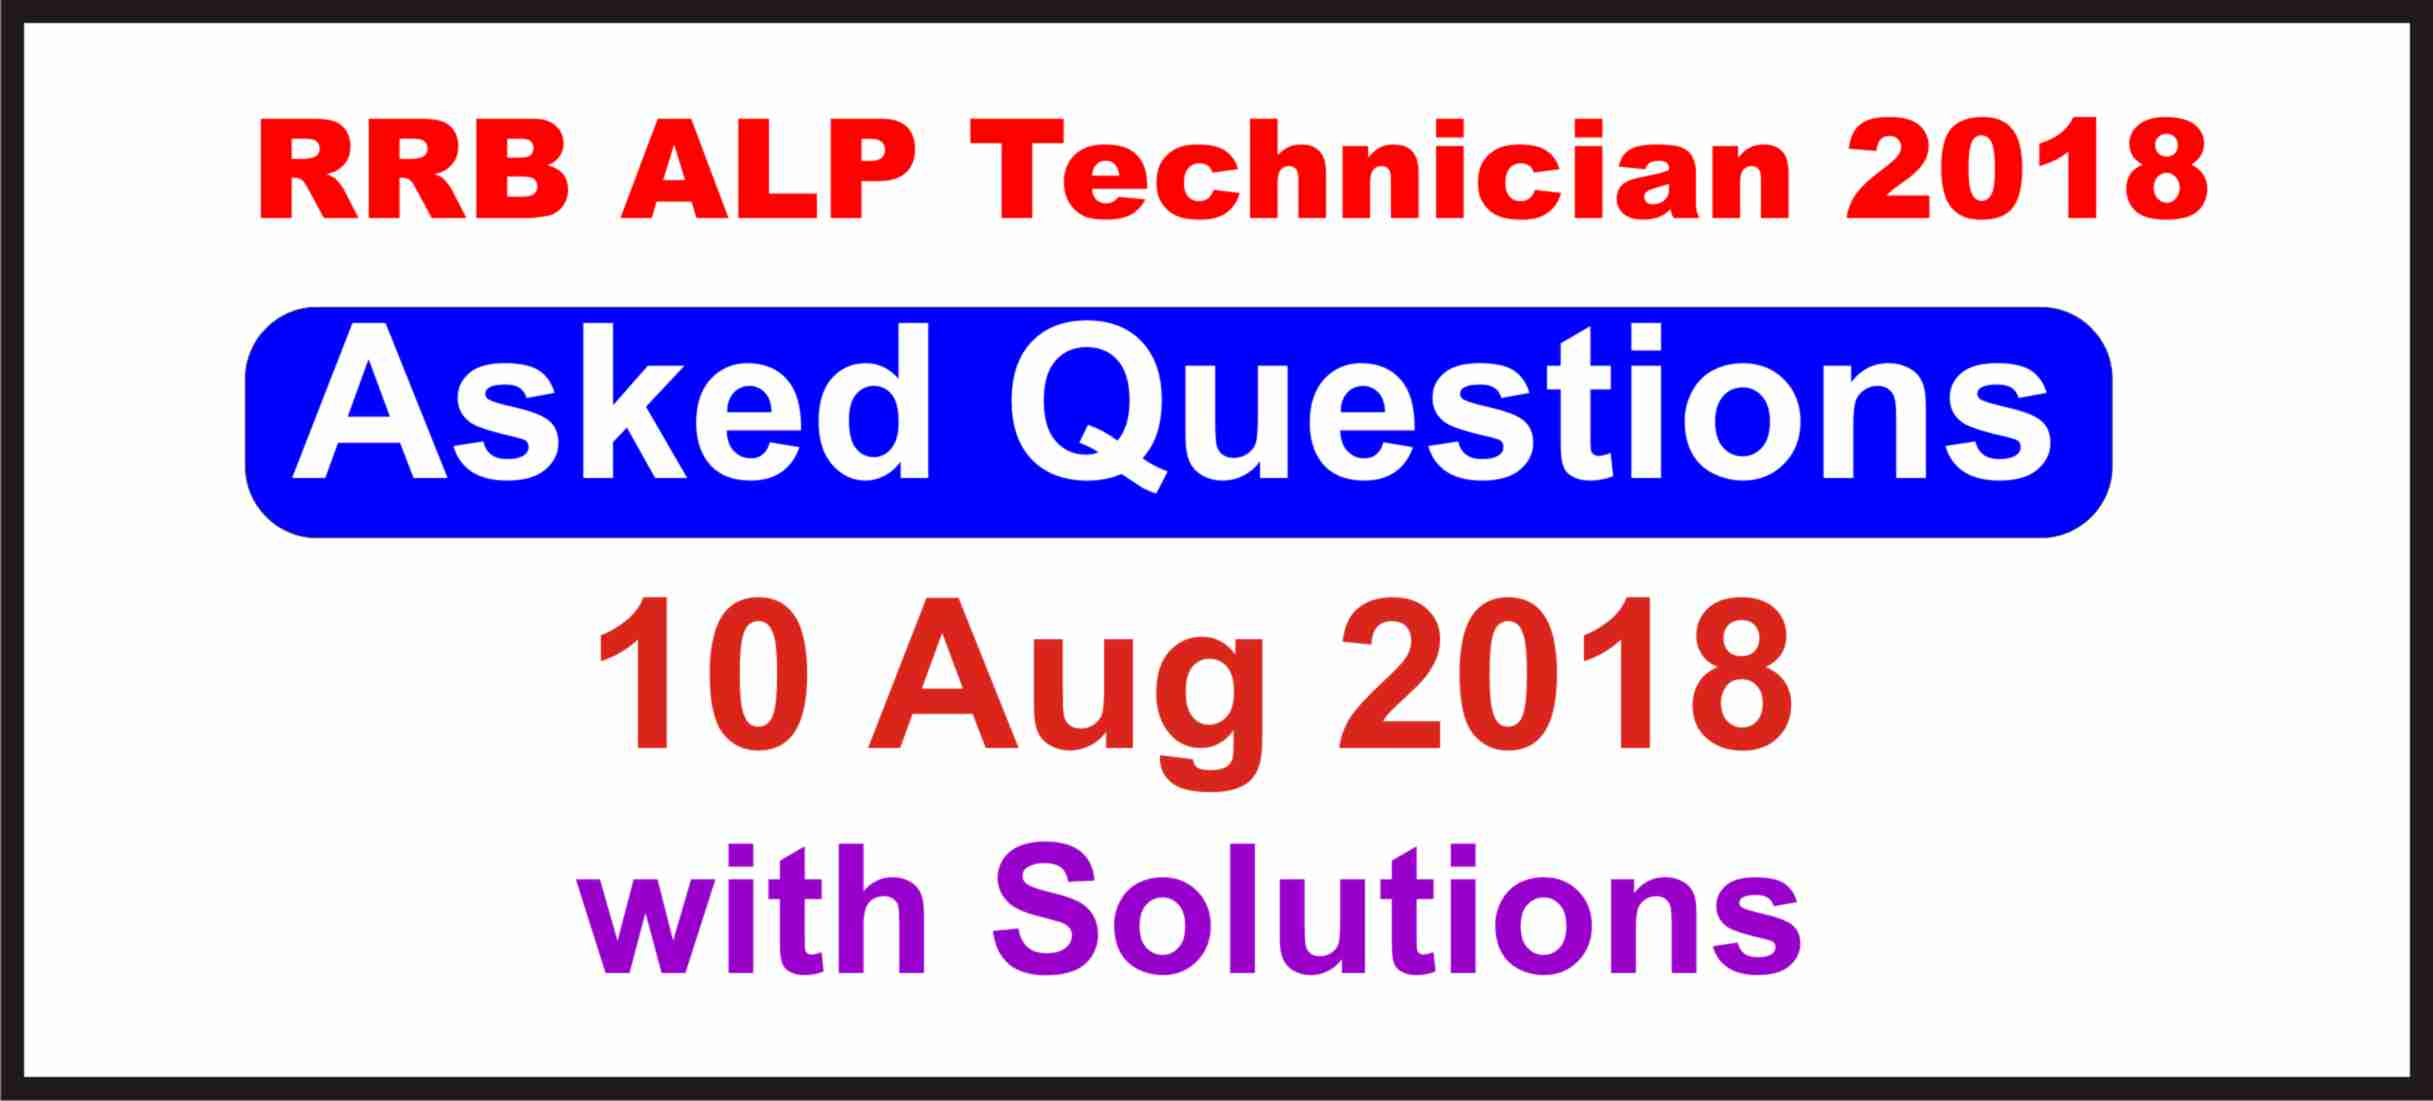 RRB ALP Technician Asked Questions 1st Shift (10 Aug 2018)